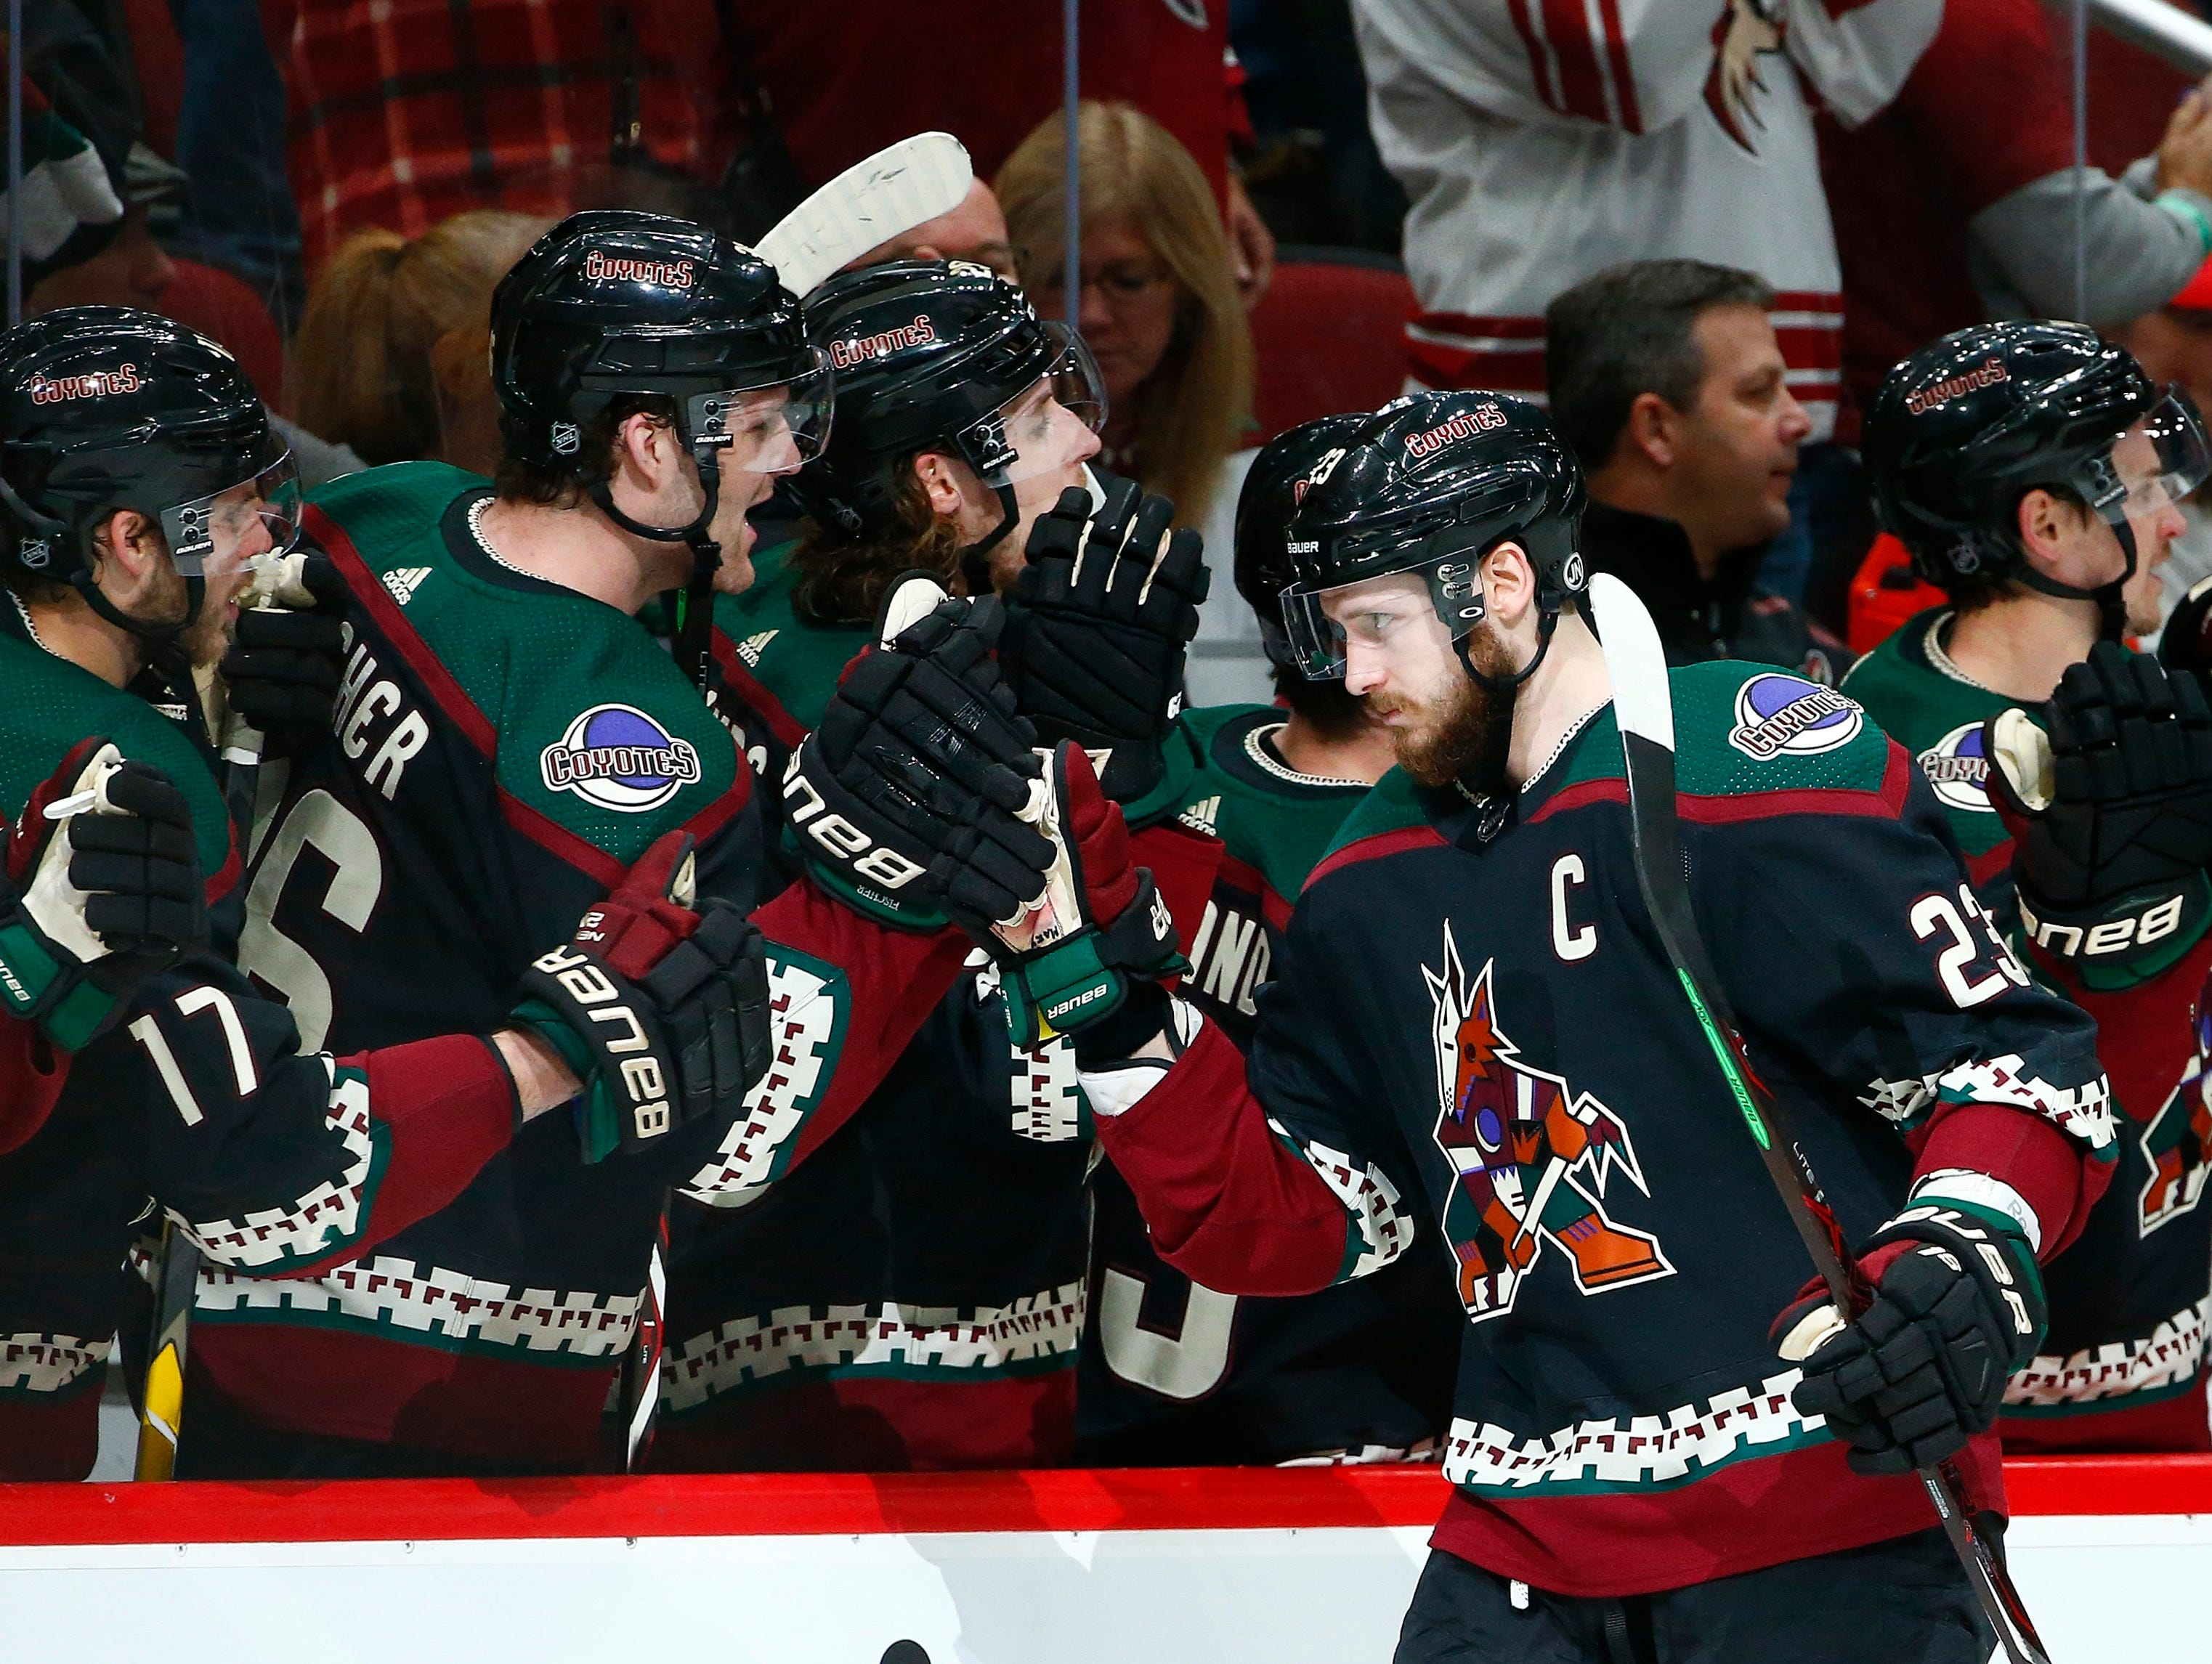 Arizona Coyotes defenseman Oliver Ekman-Larsson (23) celebrates his goal against the Detroit Red Wings with teammates on the bench during the first period Saturday, March 2, 2019, in Glendale, Ariz. (AP Photo/Ross D. Franklin)